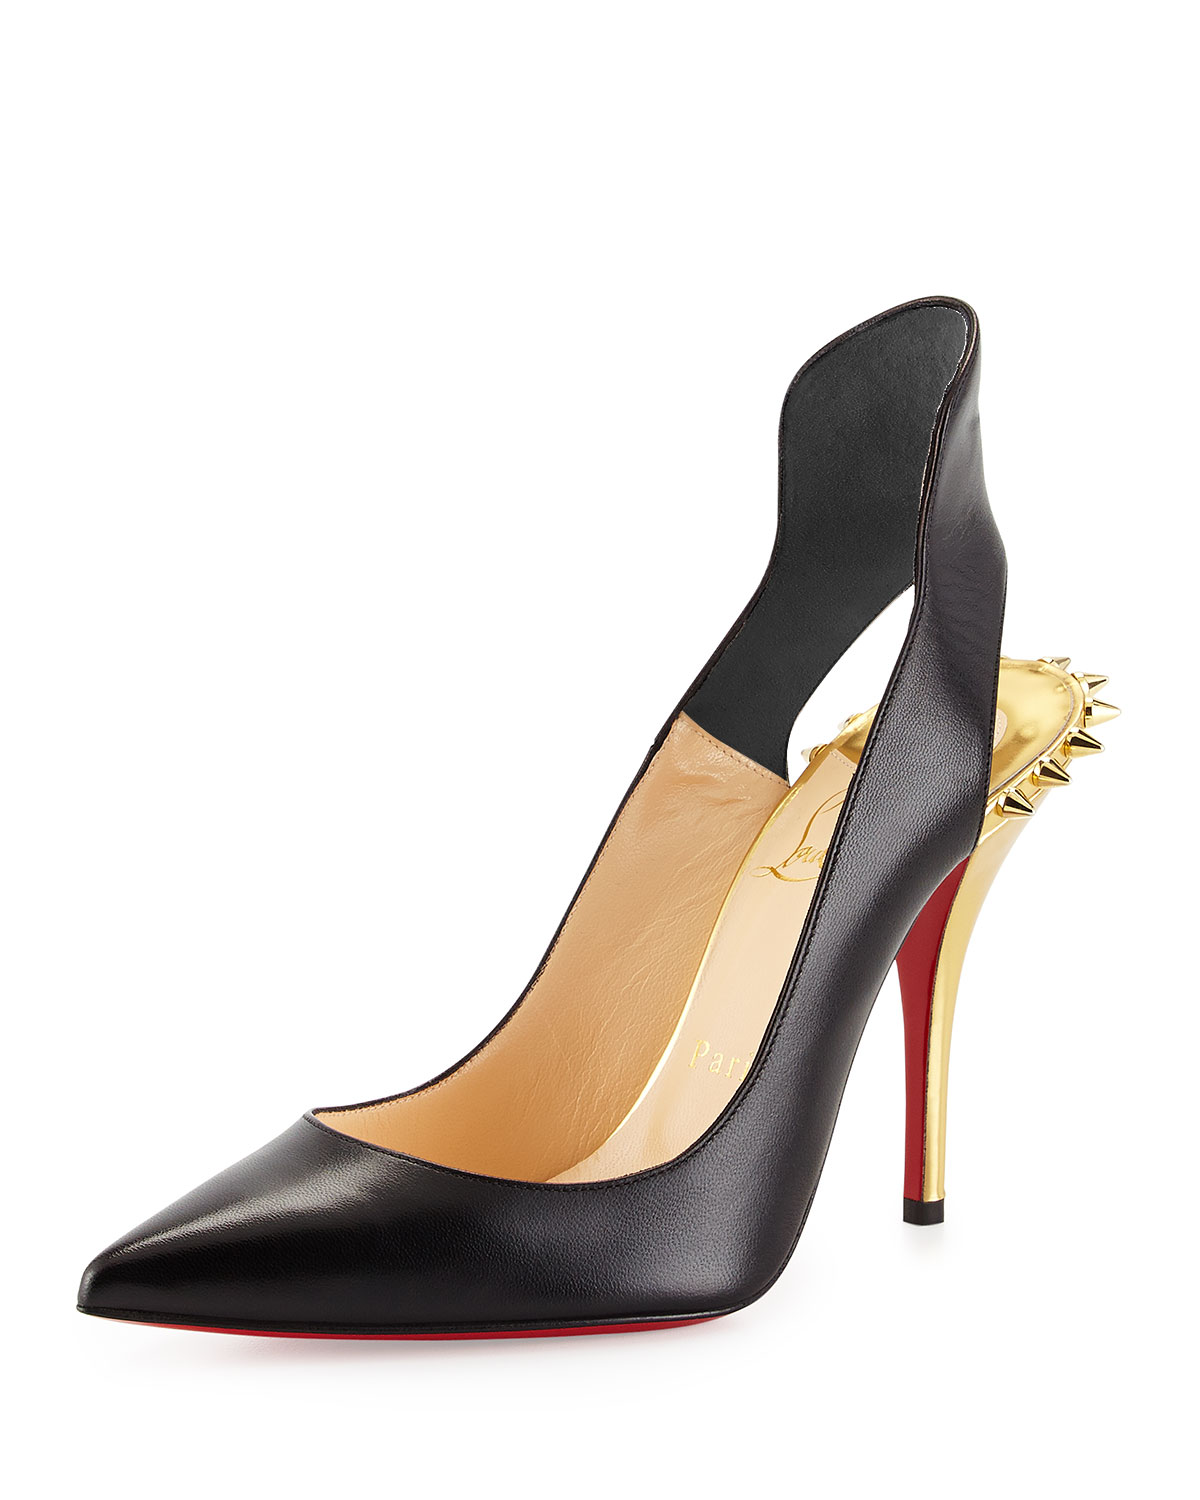 new style c6ff7 76e15 Survivita Leather Spike Red Sole Pump, Black/Gold